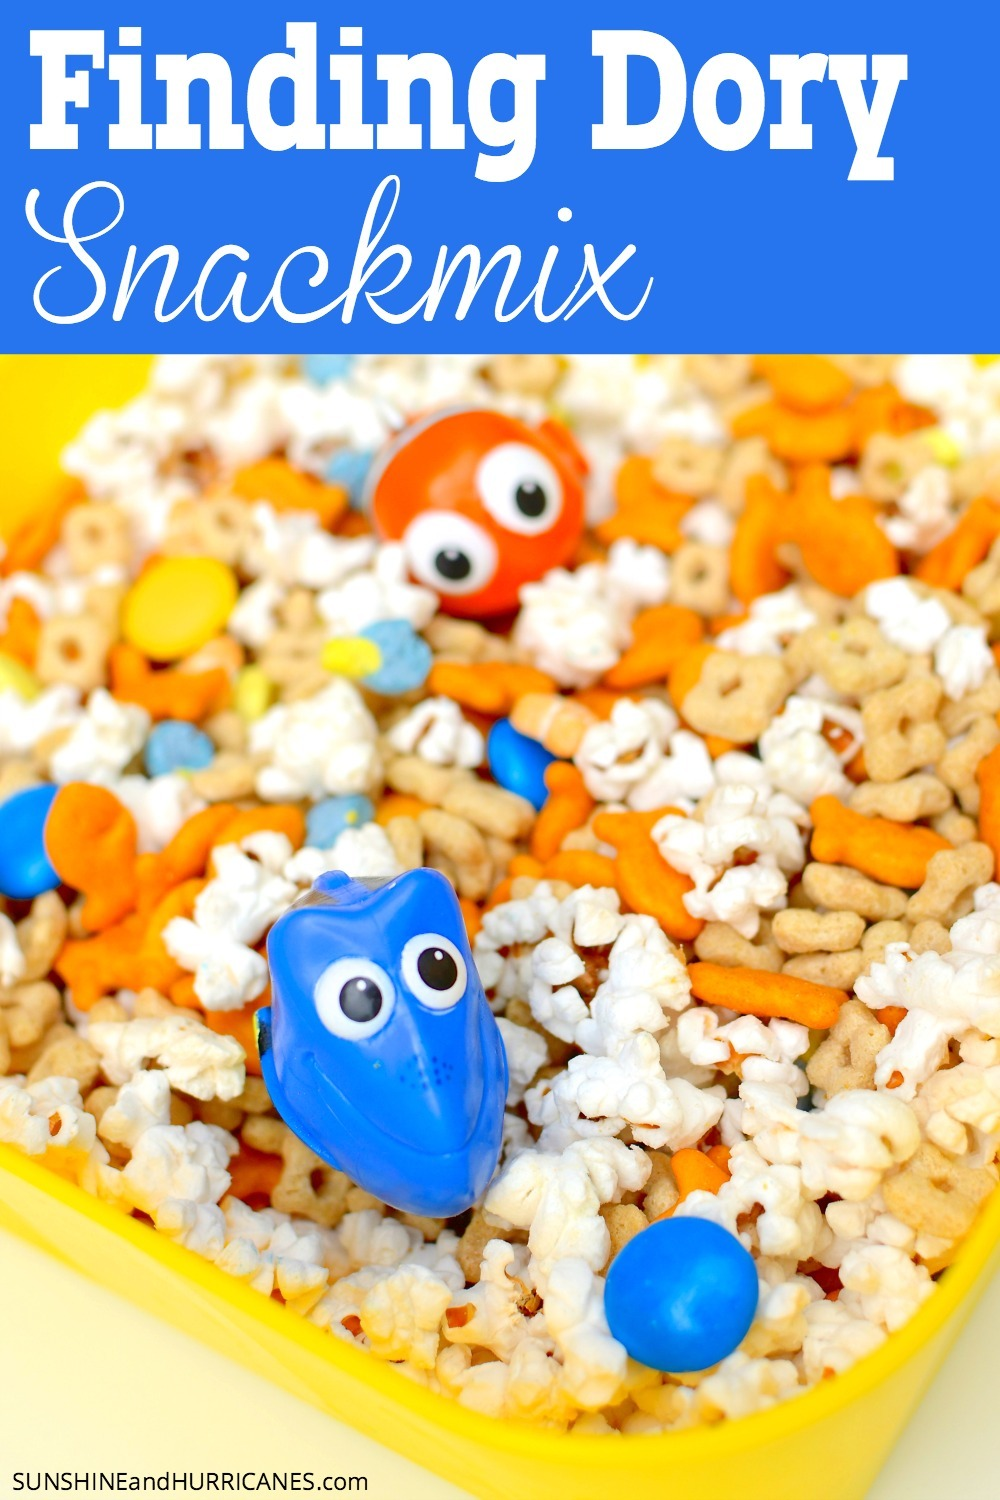 Looking for some fun food for a Finding Dory party? All your little fishes will eat up this yummy Finding Dory snack mix, perfect for a Finding Dory Birthday Party or a Finding Nemo Birthday Party. You could also host a Finding Nemo or Finding Dory movie viewing party and serve this snackmix for everyone to enjoy. Finding Dory Snackmix. SunshineandHurricanes.com